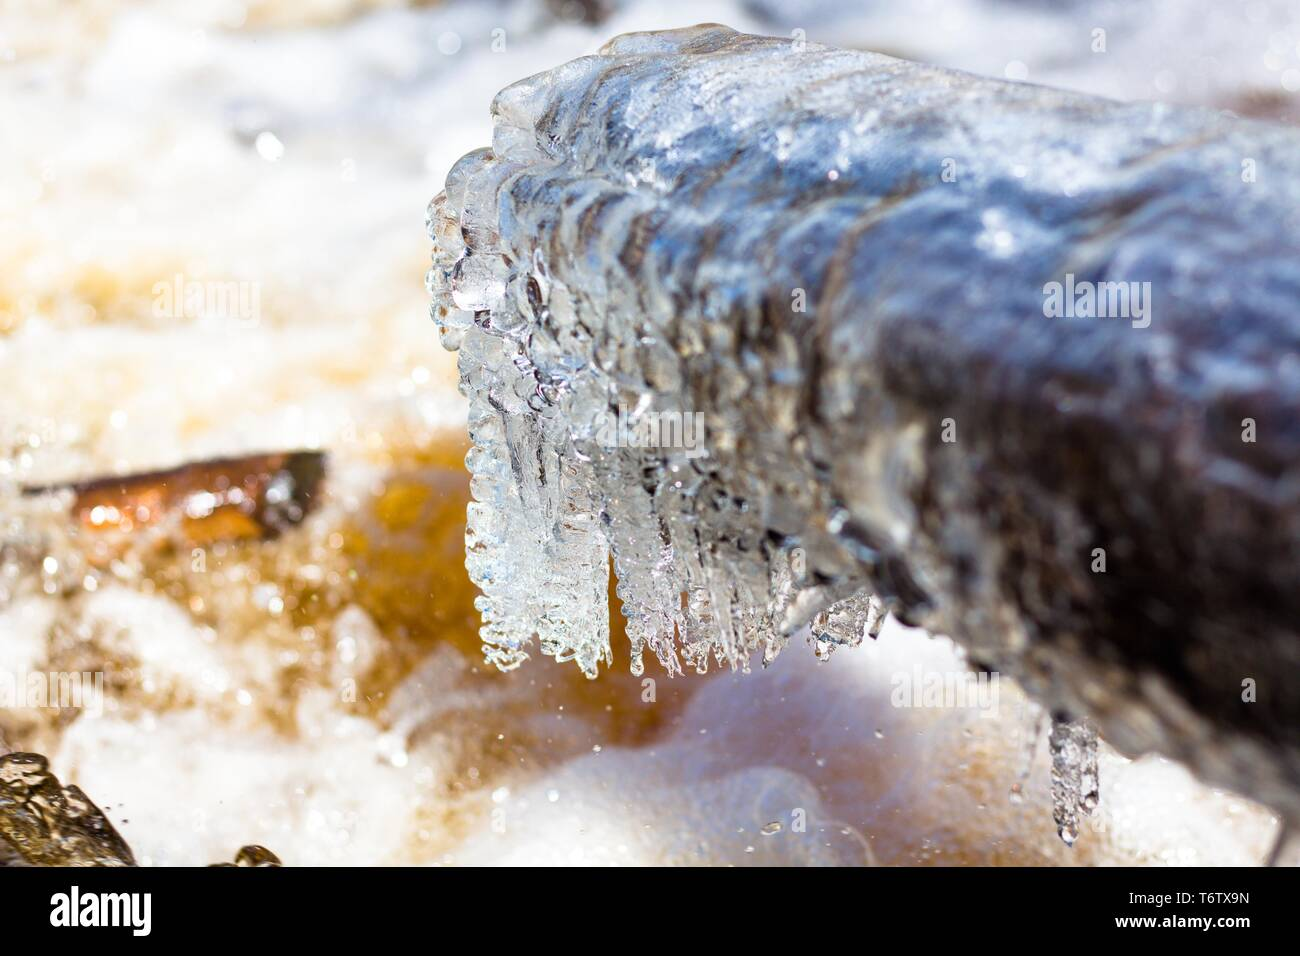 A large fallen tree is covered with a layer of ice. A log is above the current river. The bright and warm sun warms and the ice melts. Drops fall into - Stock Image